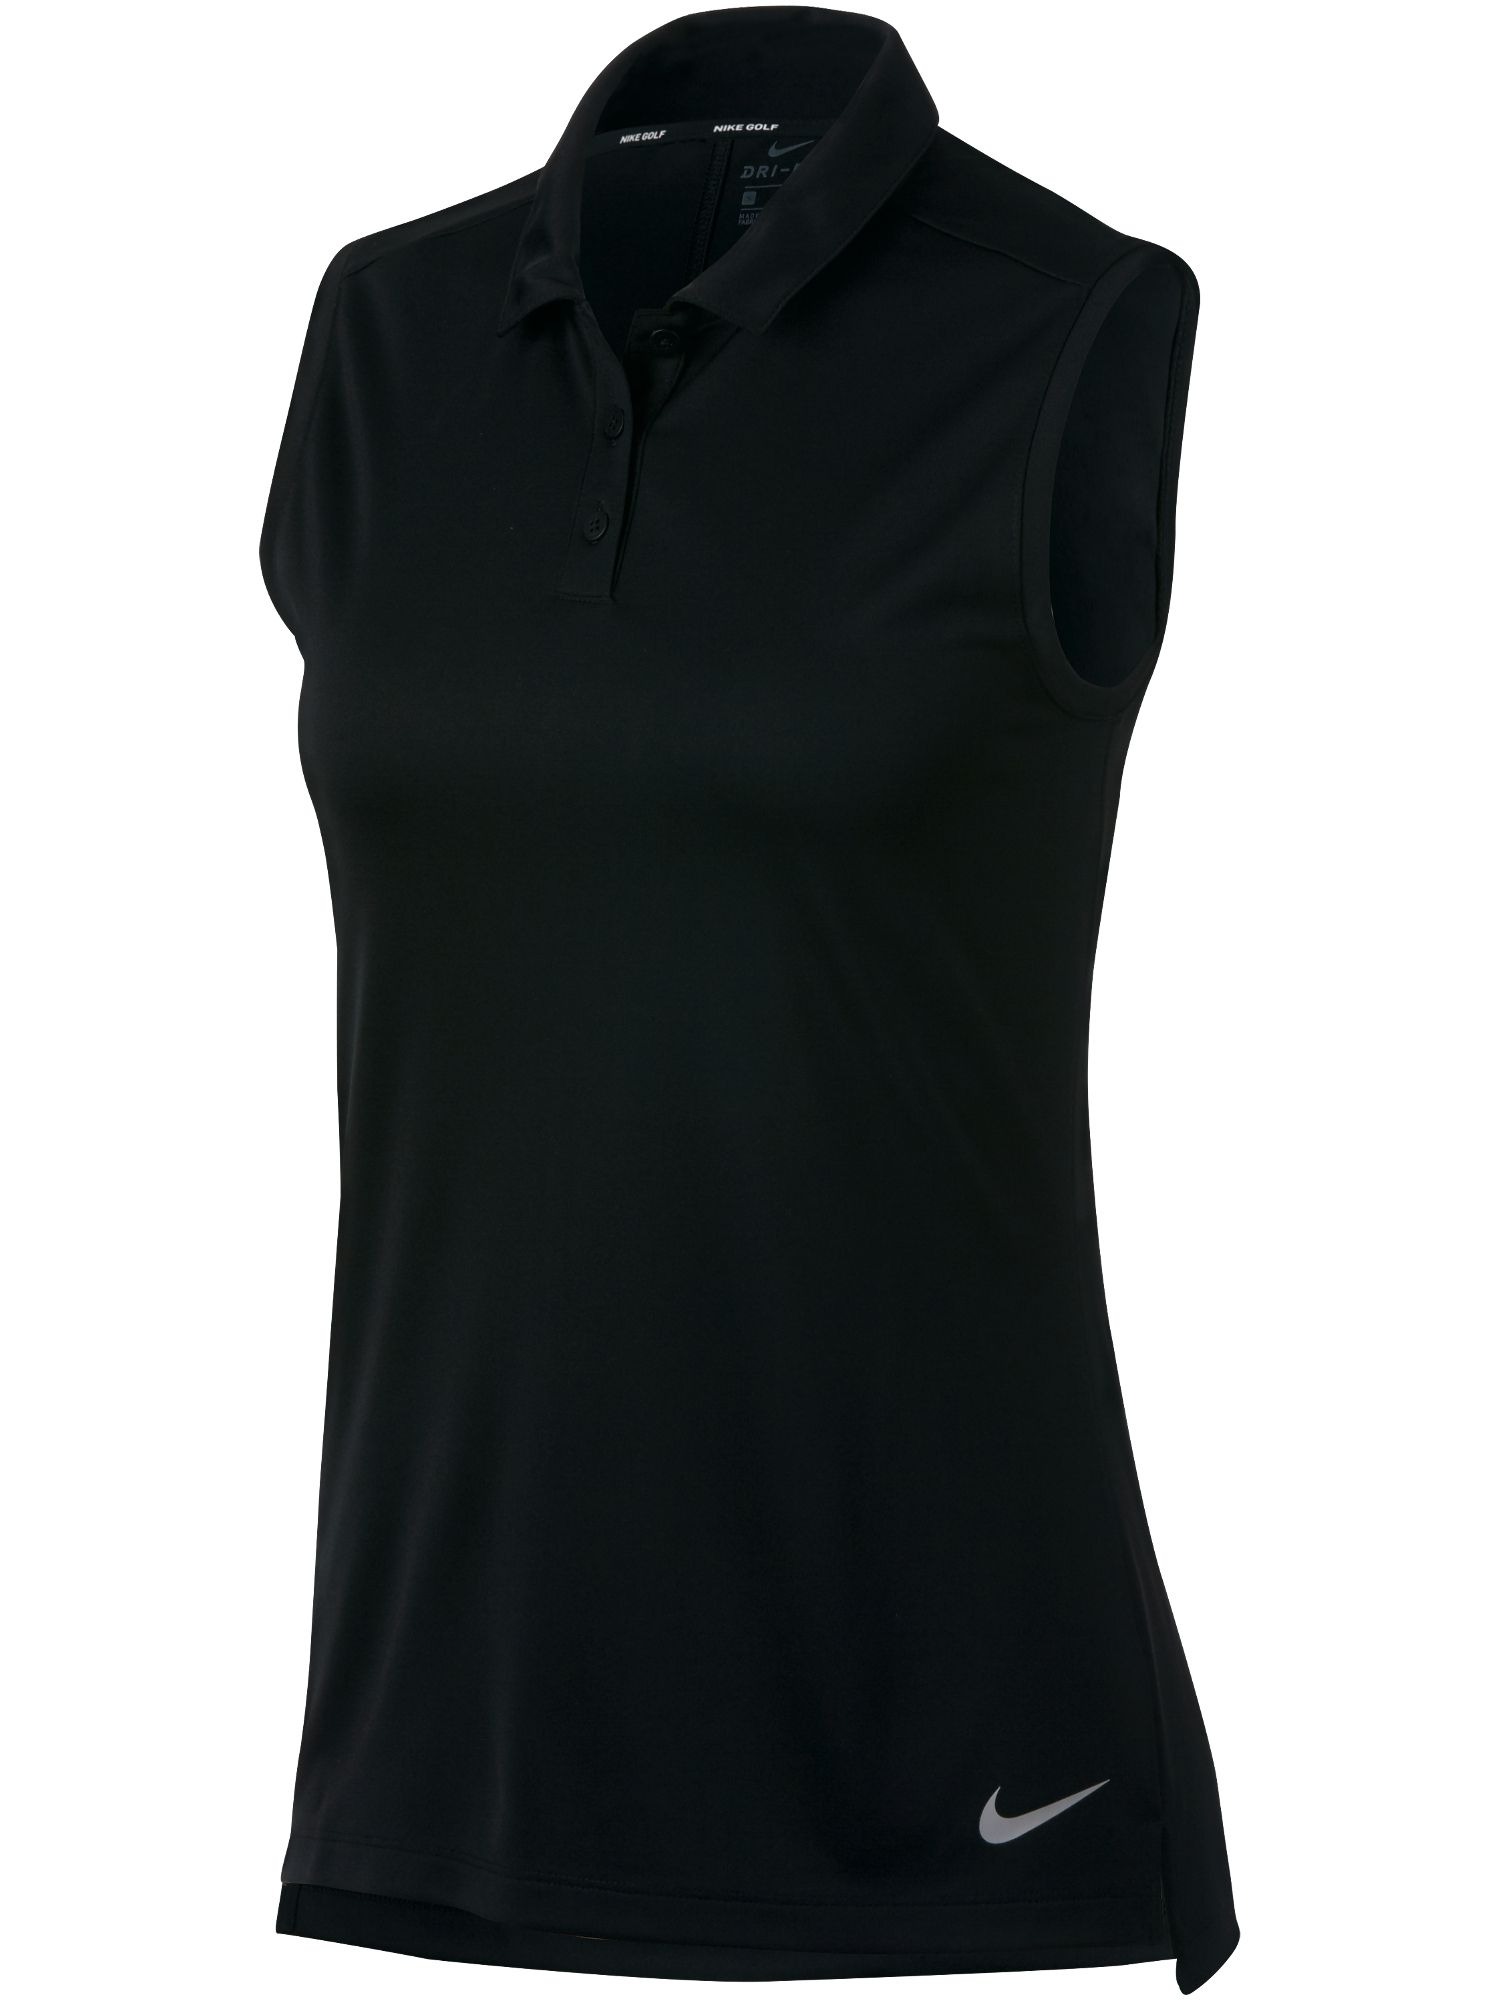 Nike Golf Dry Sleeveless Polo, Black